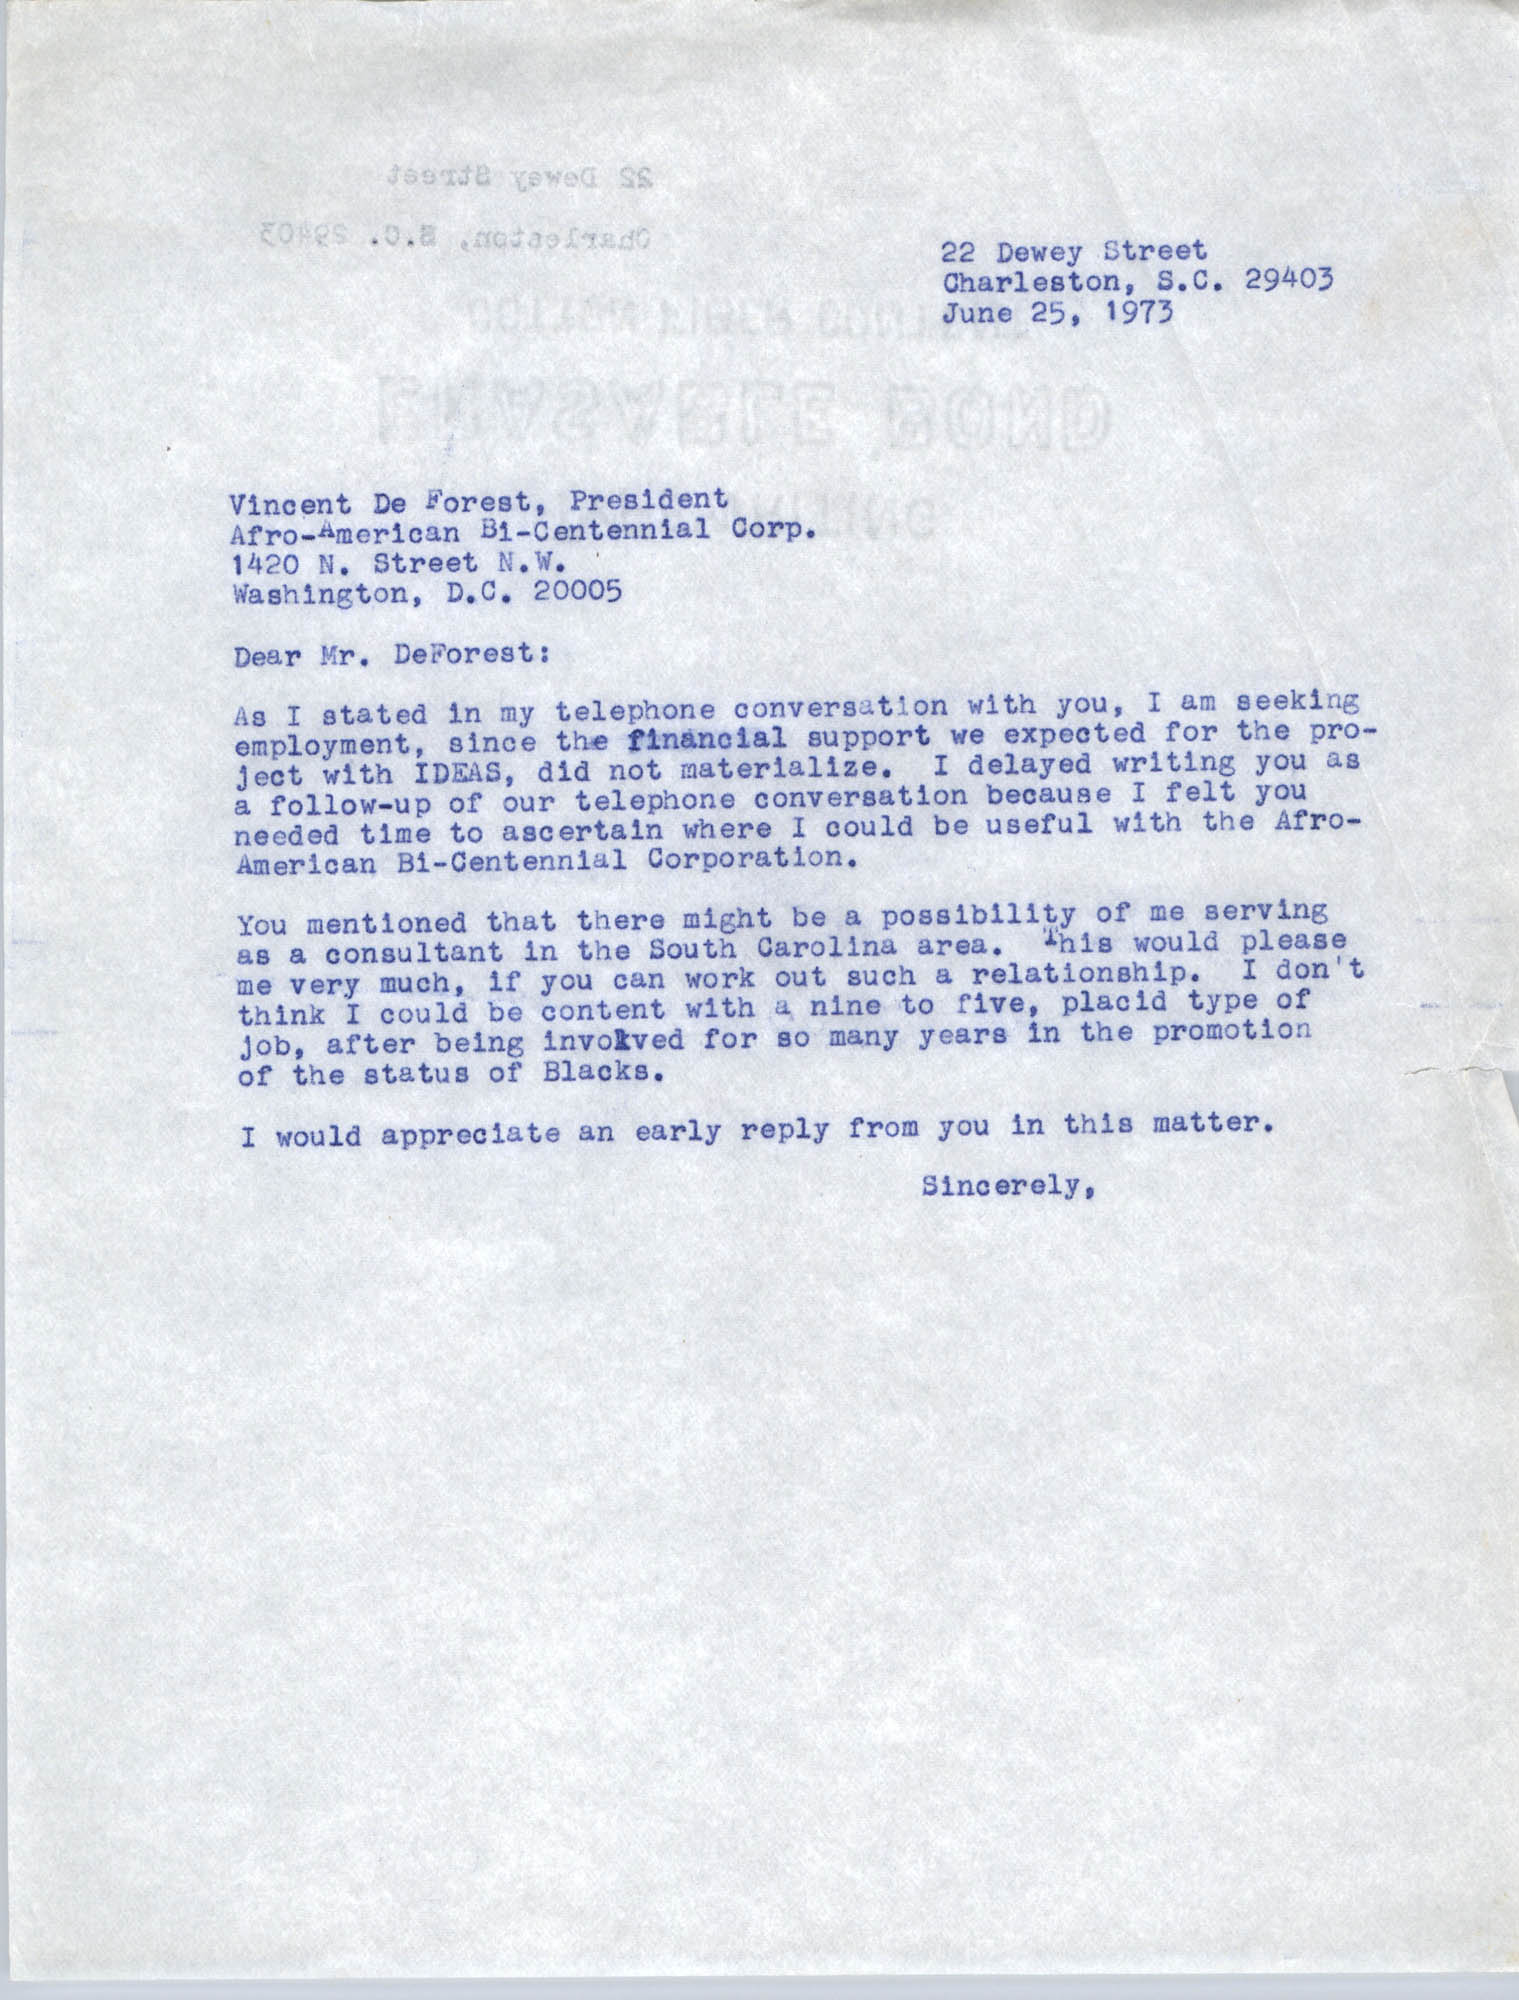 Letter from Bernice Robinson to Vincent De Forest, June 25, 1973